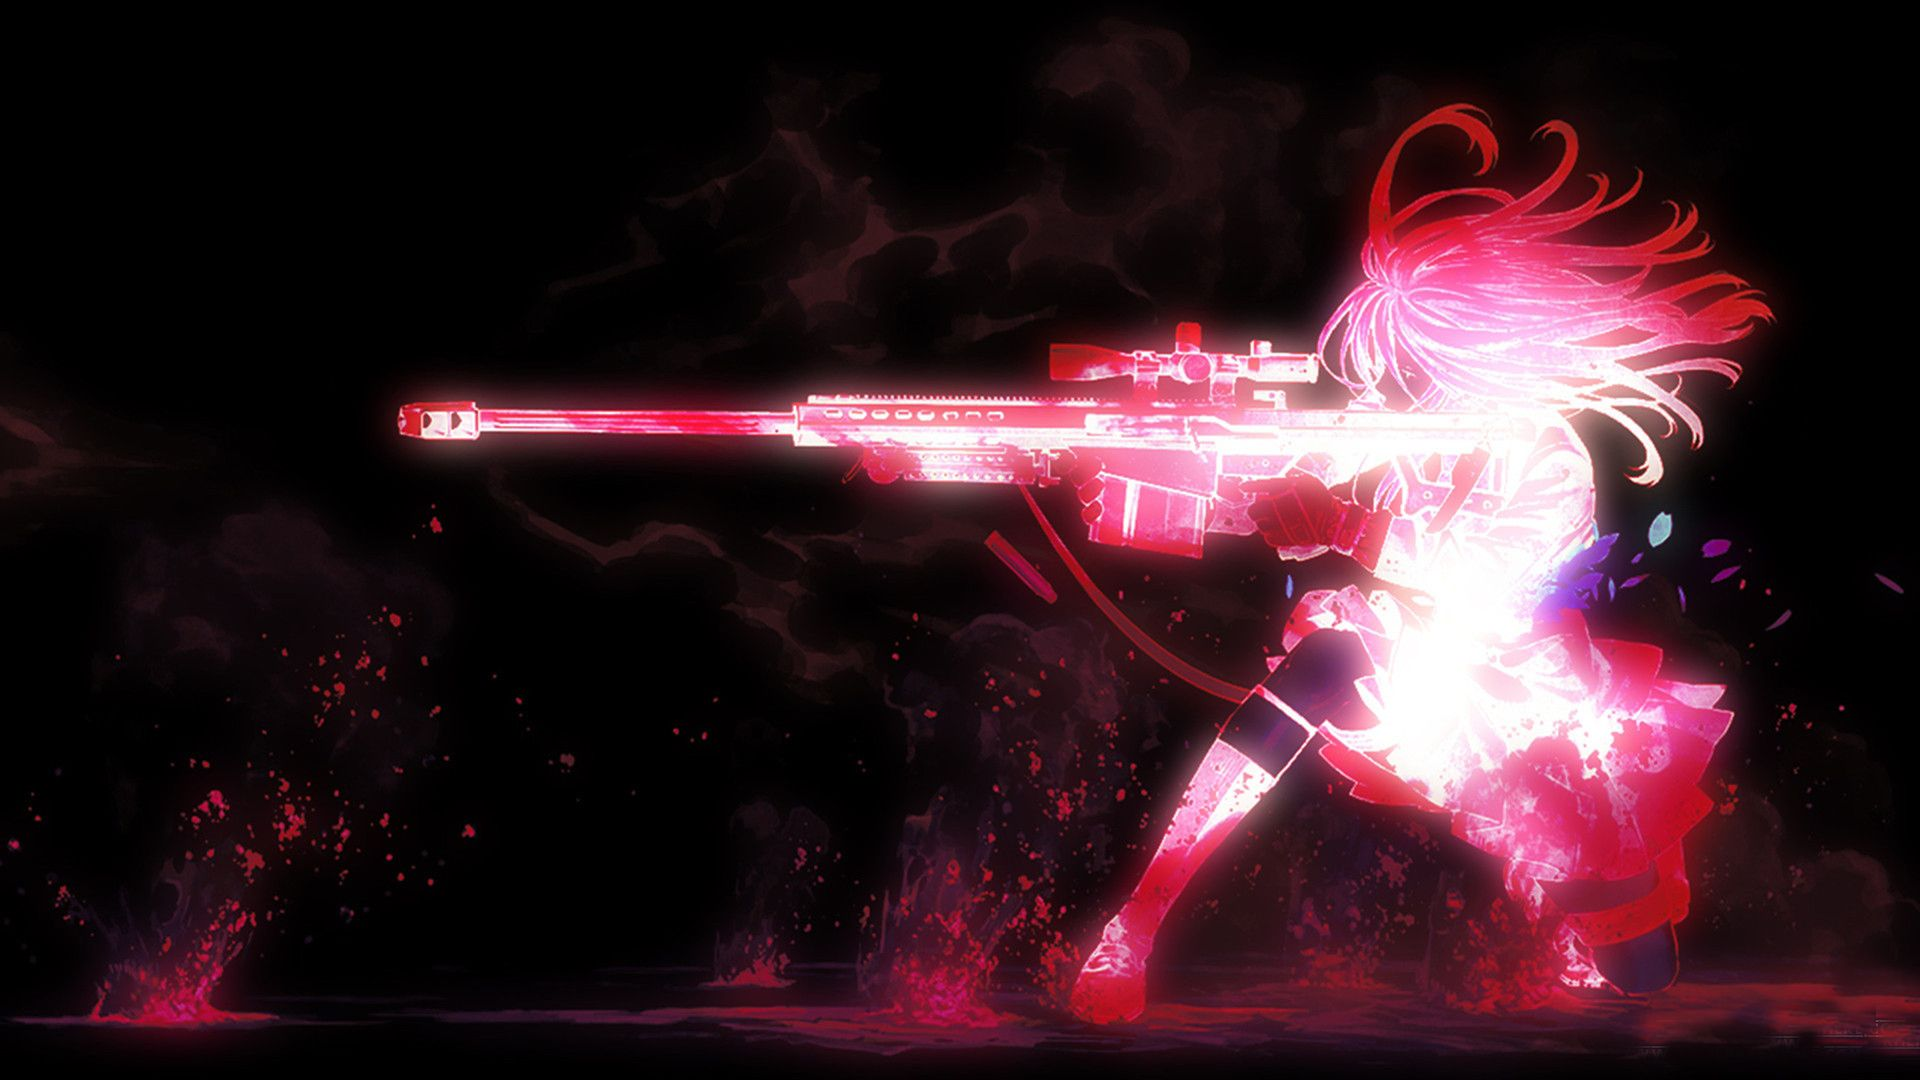 Anime Neon 1920x1080 Wallpapers - Wallpaper Cave